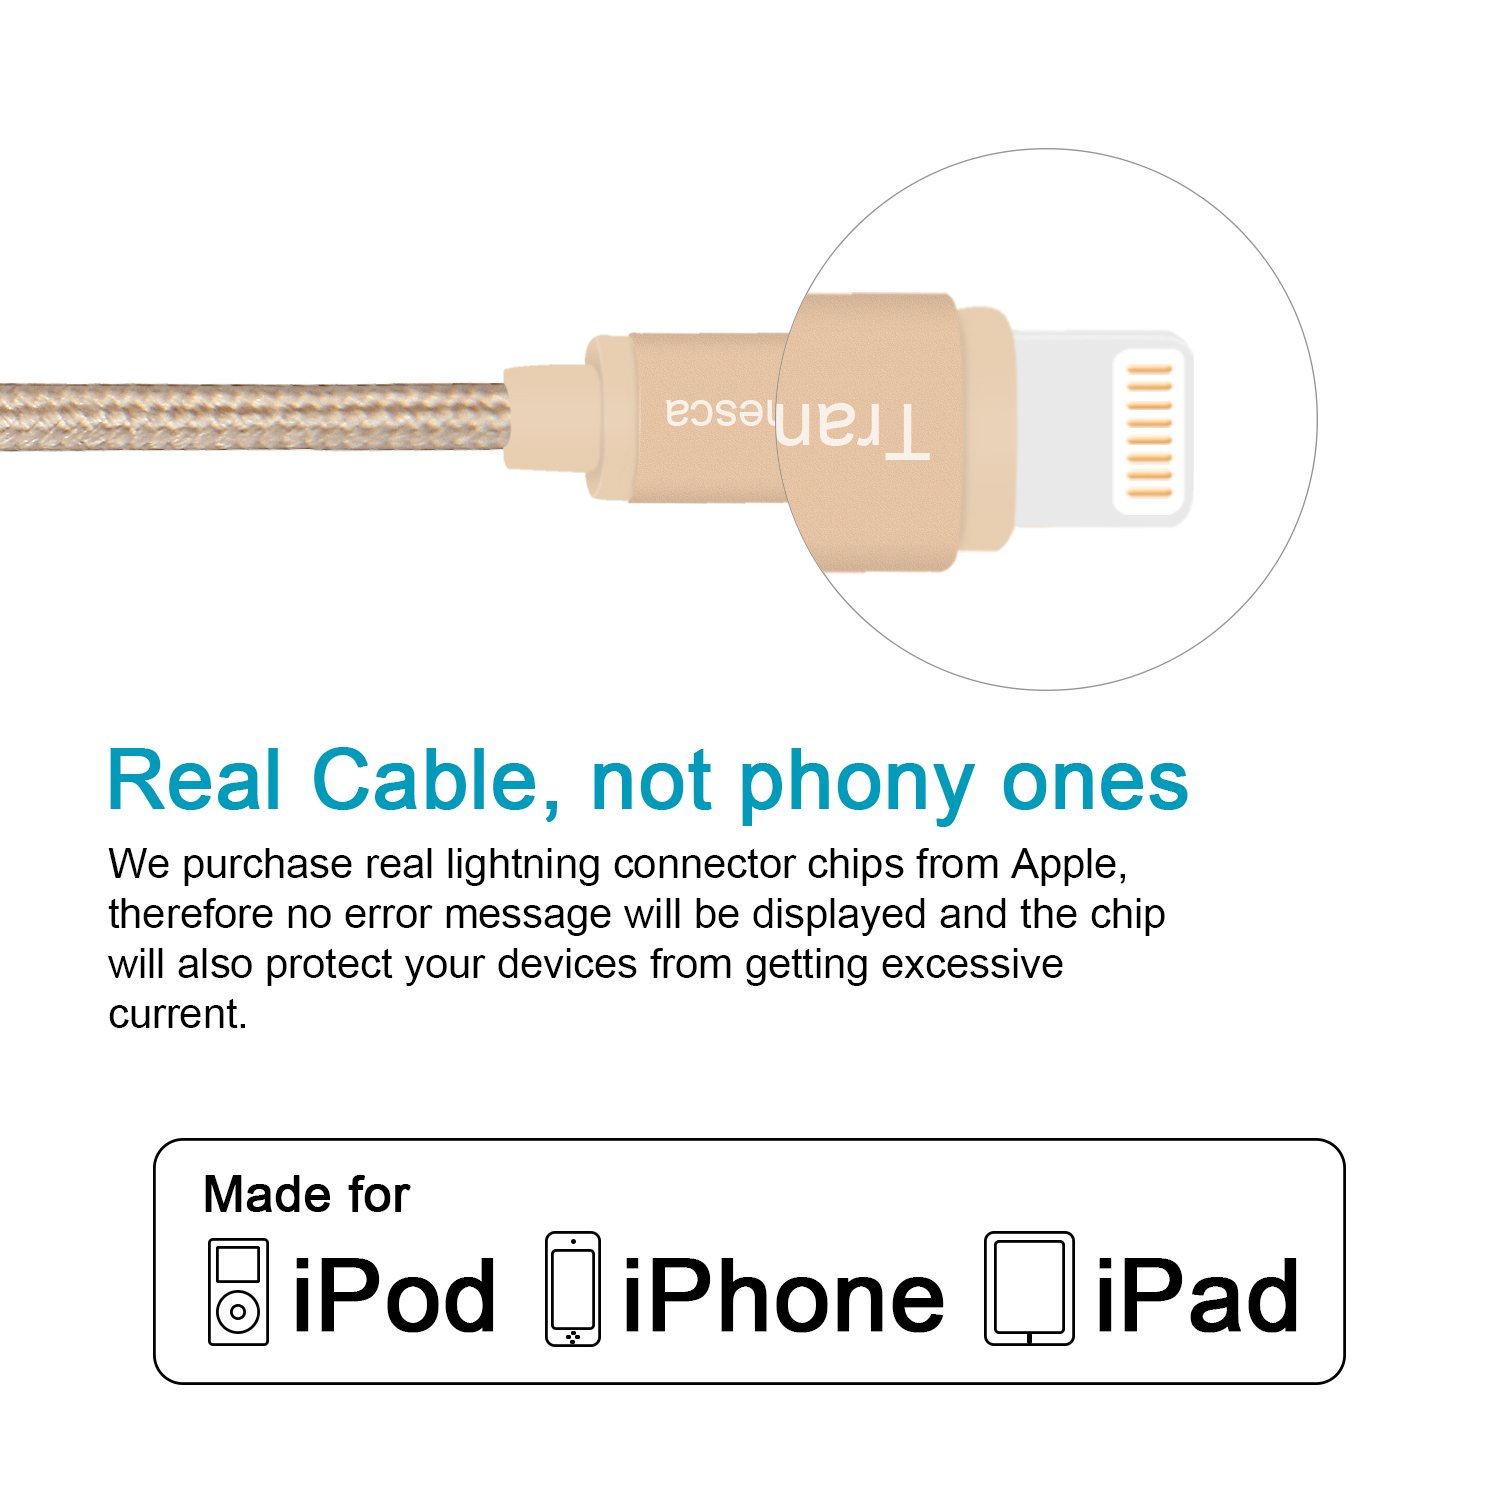 Tranesca Nylon Braided Apple Charging Cable for iPhone X,iPhone8,iPhone 7/7  Plus/iPhone 6/6s/iPad Air/iPad Pro and More-Gold (6 Feet/1 8 Meter)